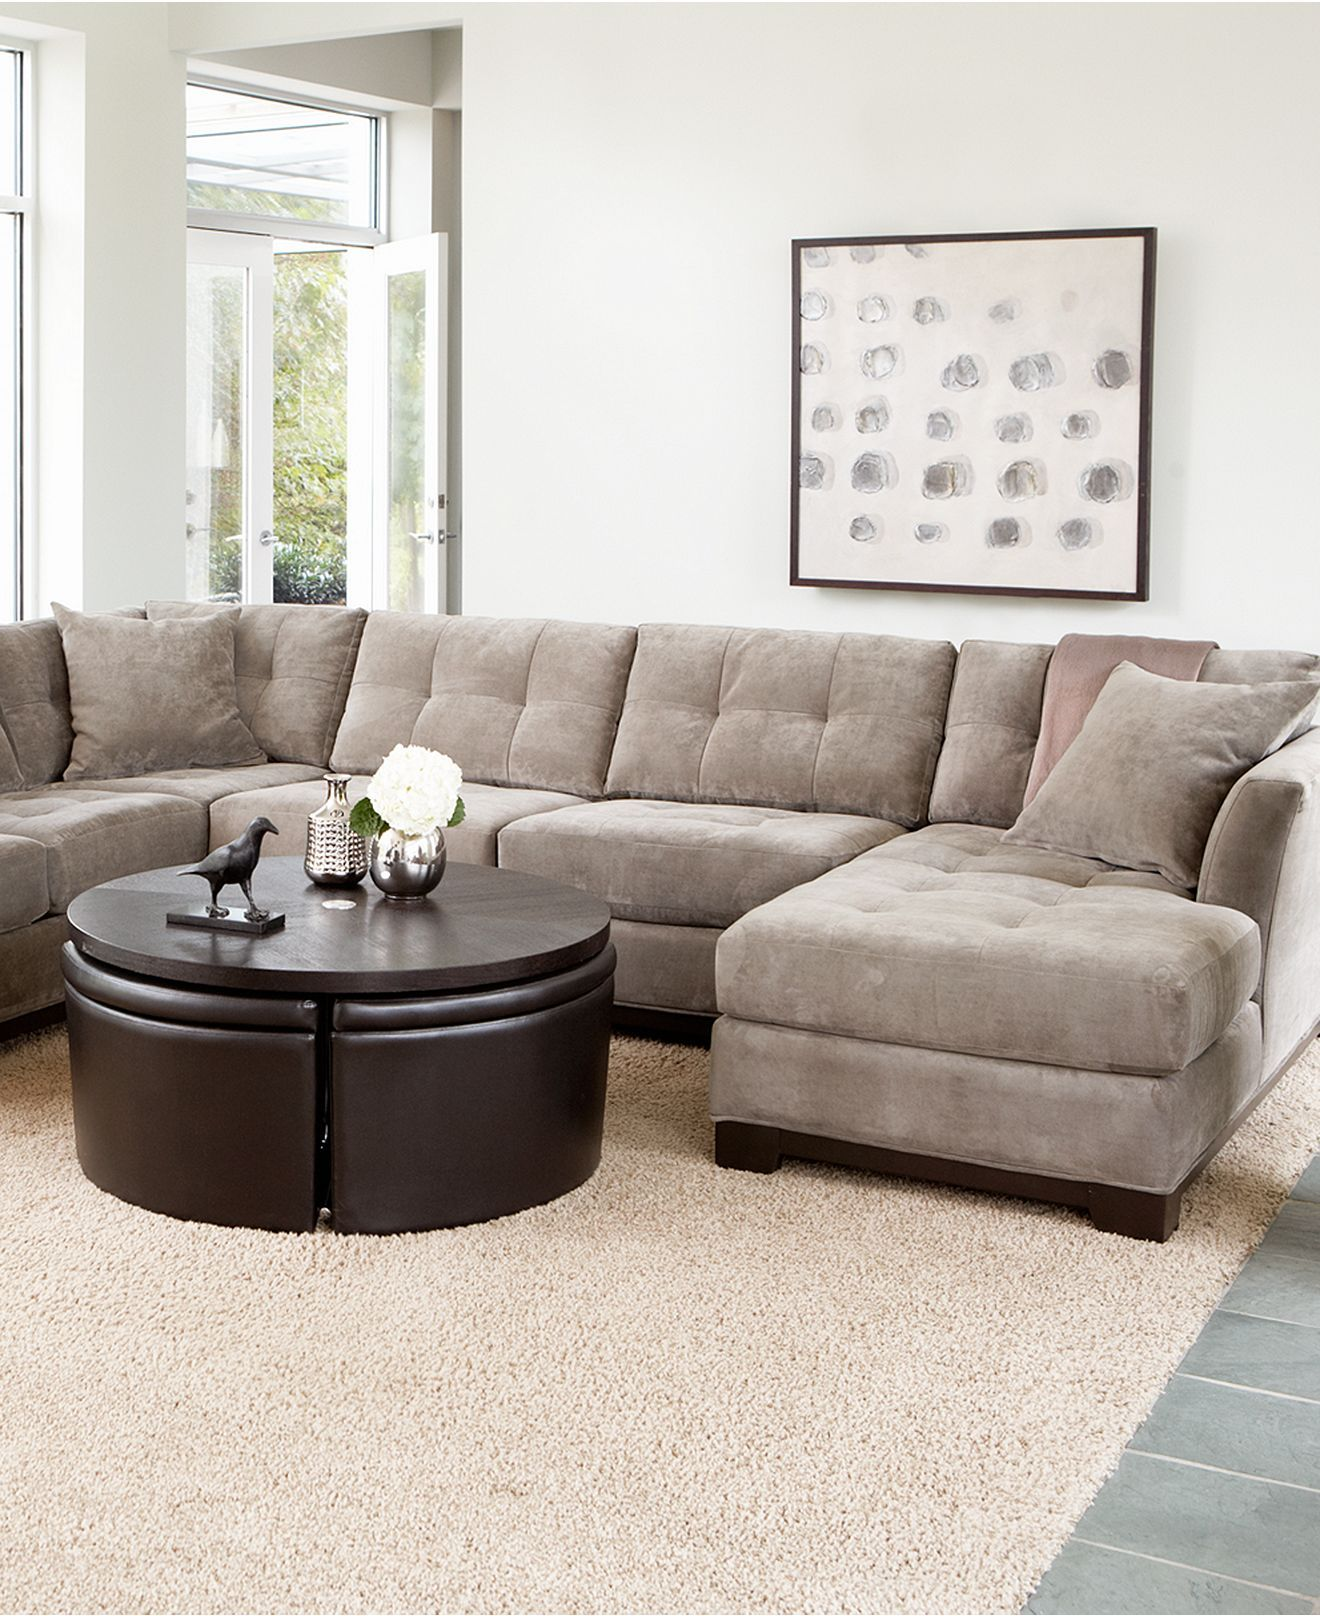 macy s elliot sofa ashley furniture bed reviews fabric sectional collection created for 39s